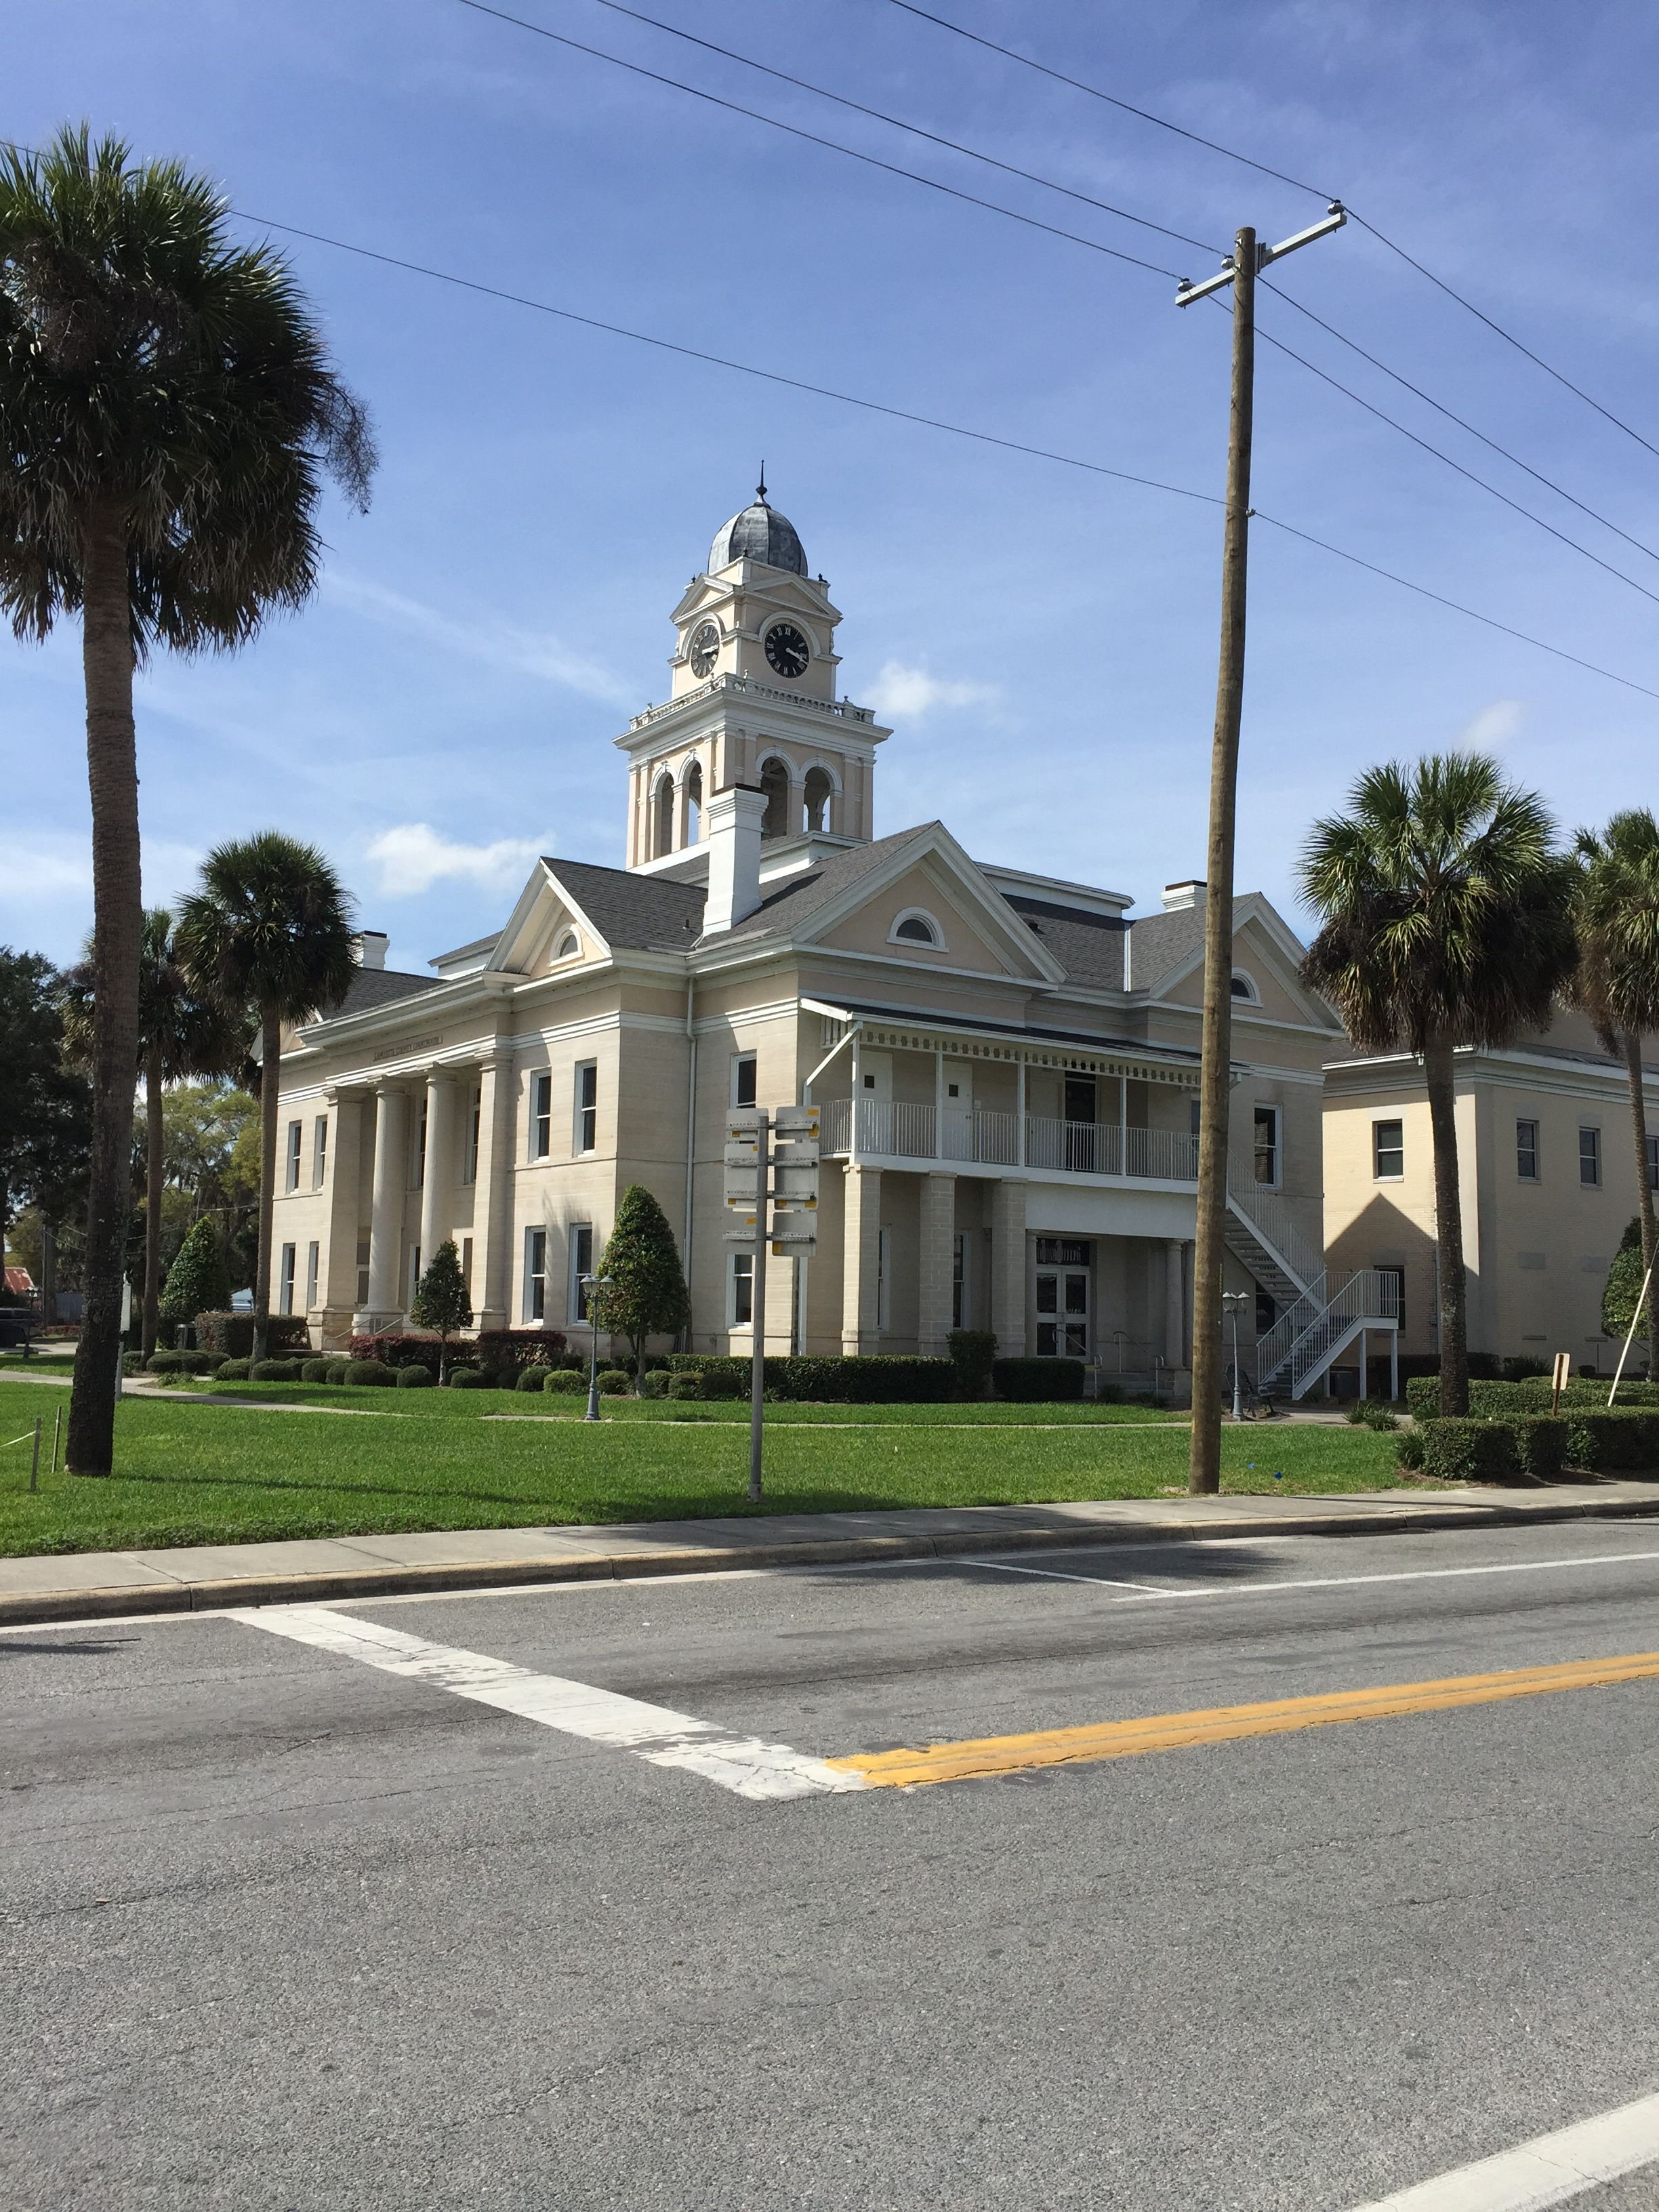 Lafayette county courthouse in mayo florida paul